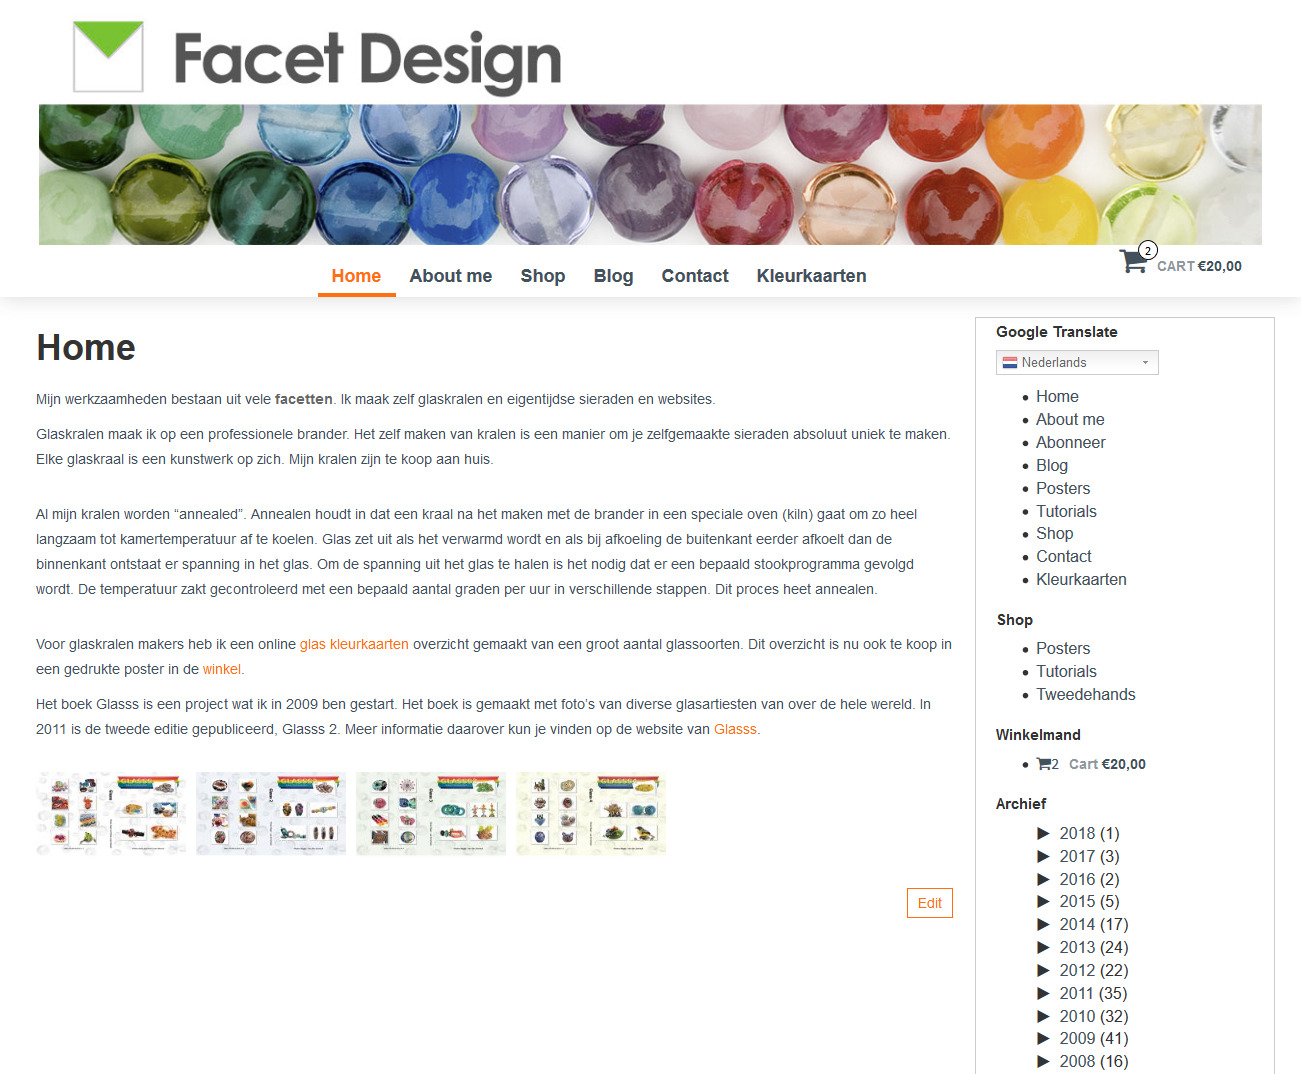 screenshot www.facet design.com 2019.06.09 13 50 59